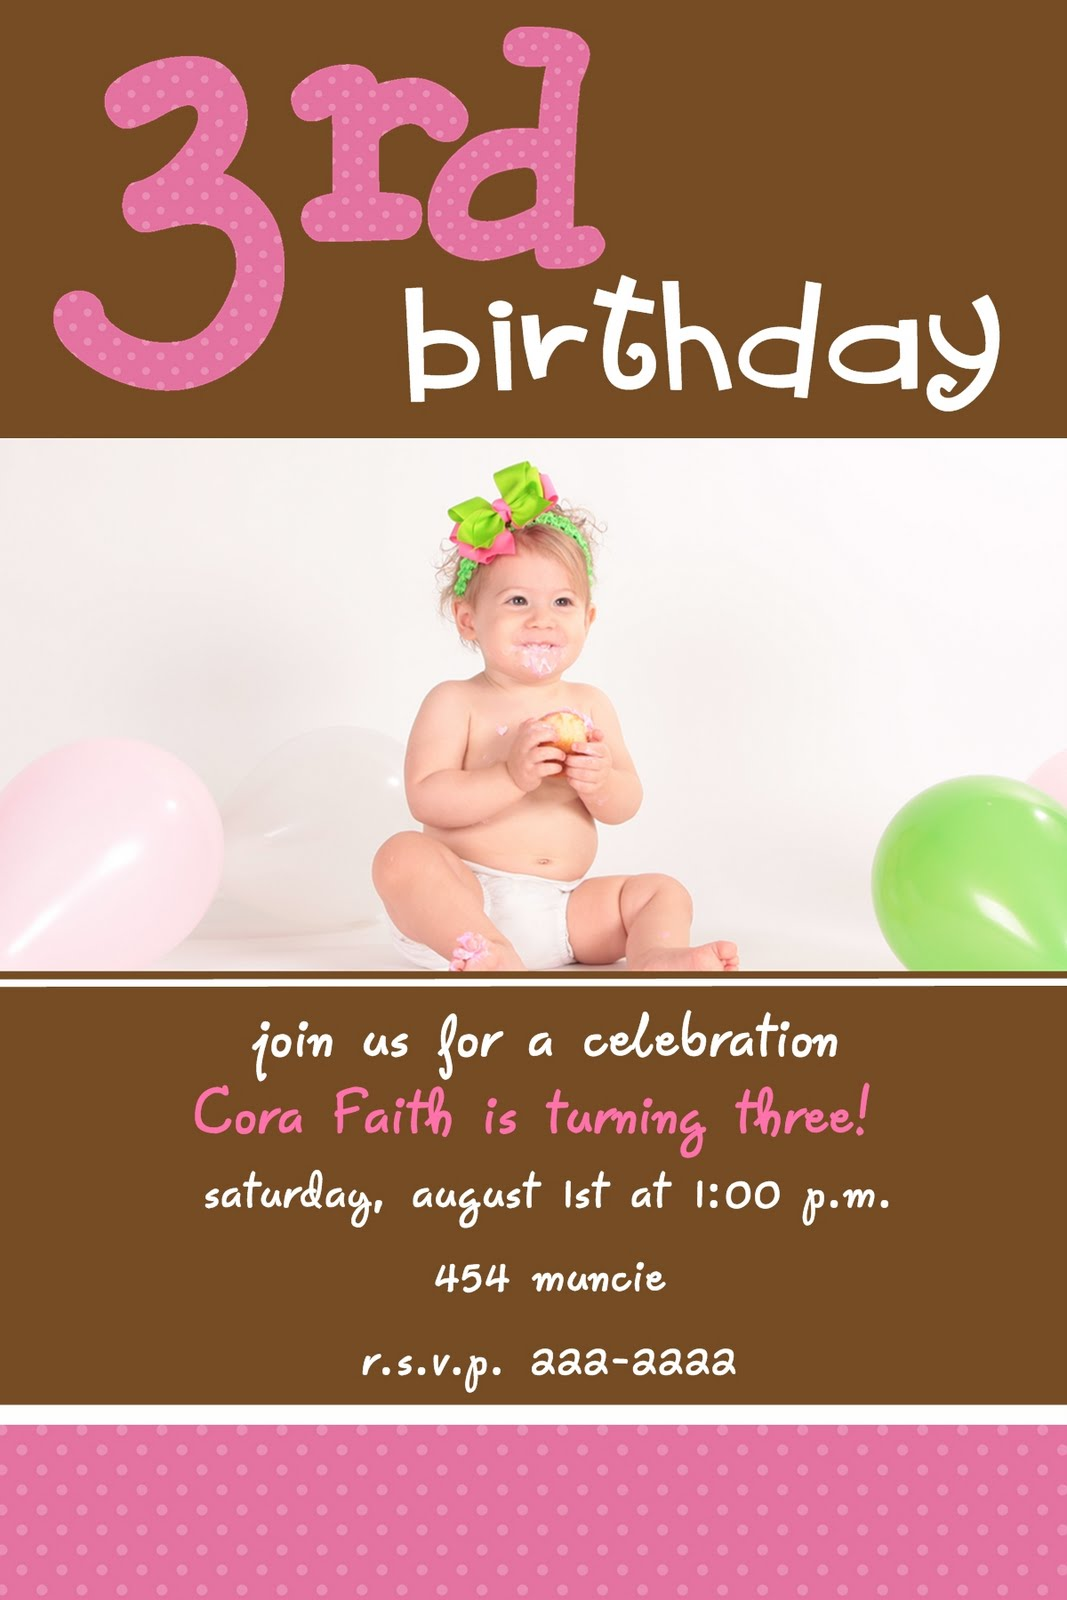 3rd birthday invitation quotes ; 3rd-birthday-invitation-wording-template-der53iw5